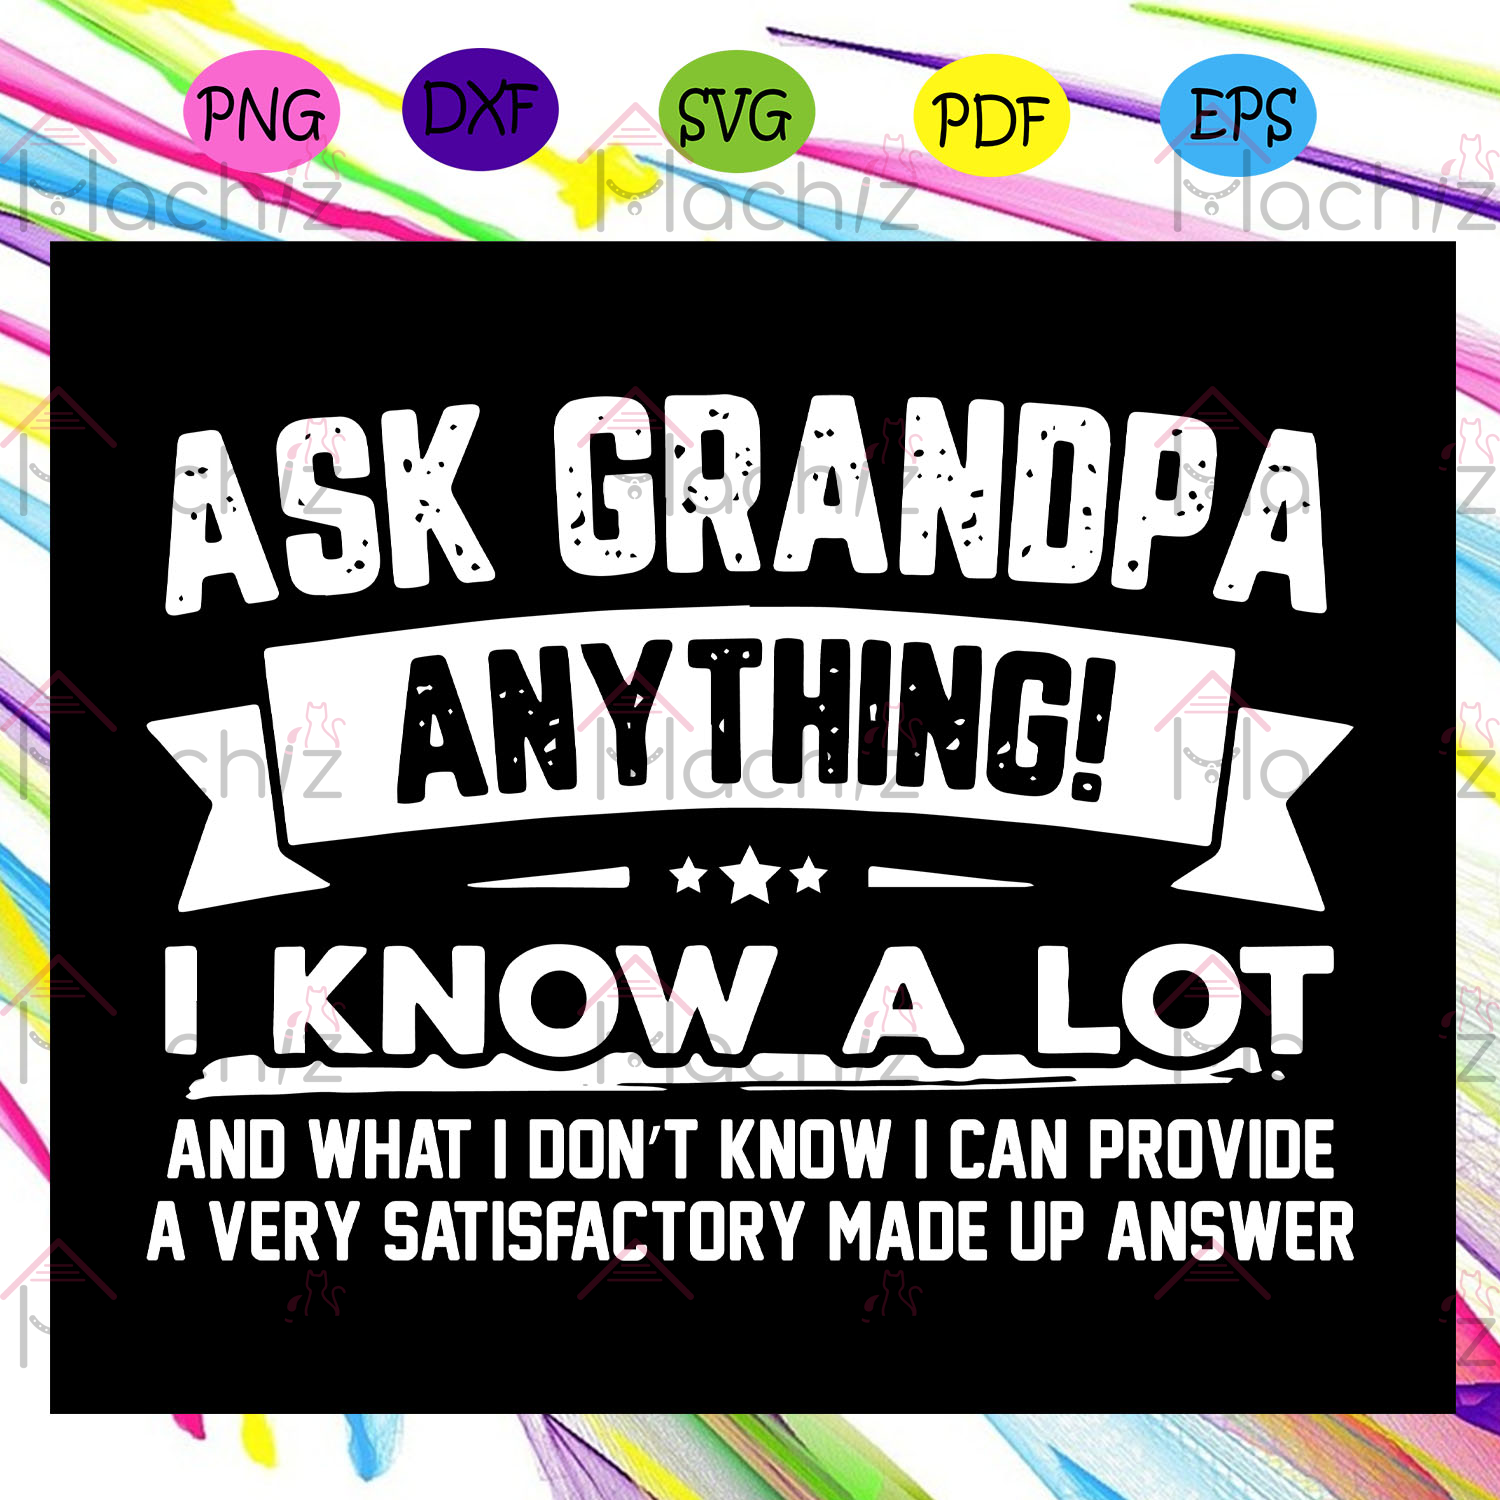 Ask grandpa anything I know a lot svg, Happy fathers day 2020 svg, fathers day svg, fathers day svg, fathers day gift, gift for papa, fathers day lover, fathers day lover gift, Files For Silhouette, Files For Cricut, SVG, DXF, EPS, PNG, Instant Download